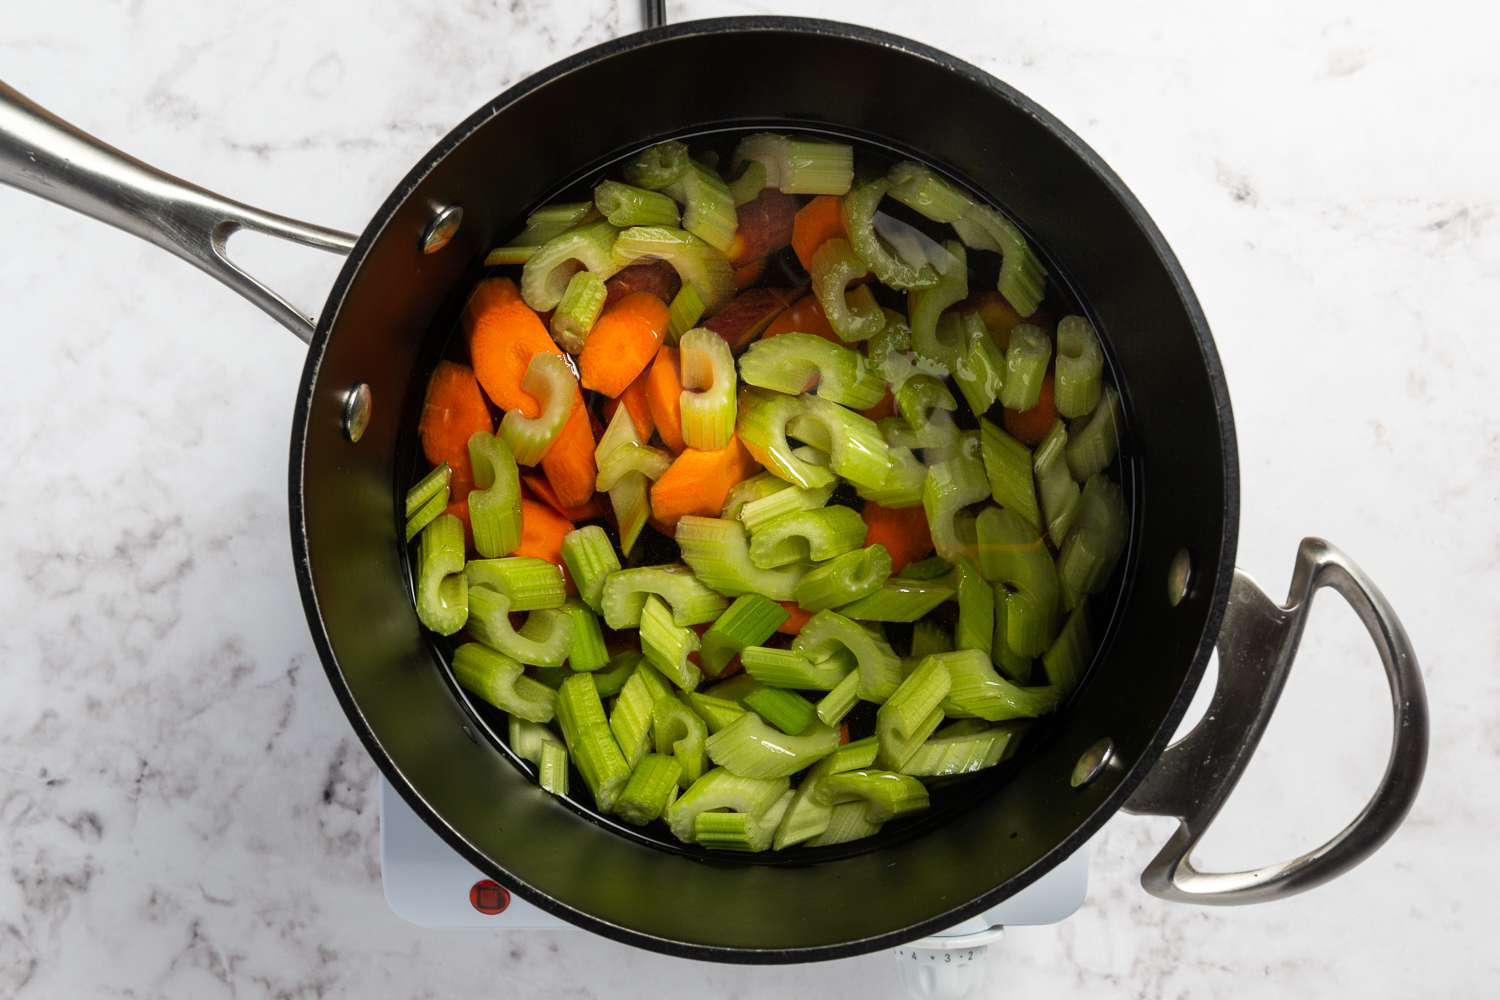 celery, onions and carrots in a saucepan